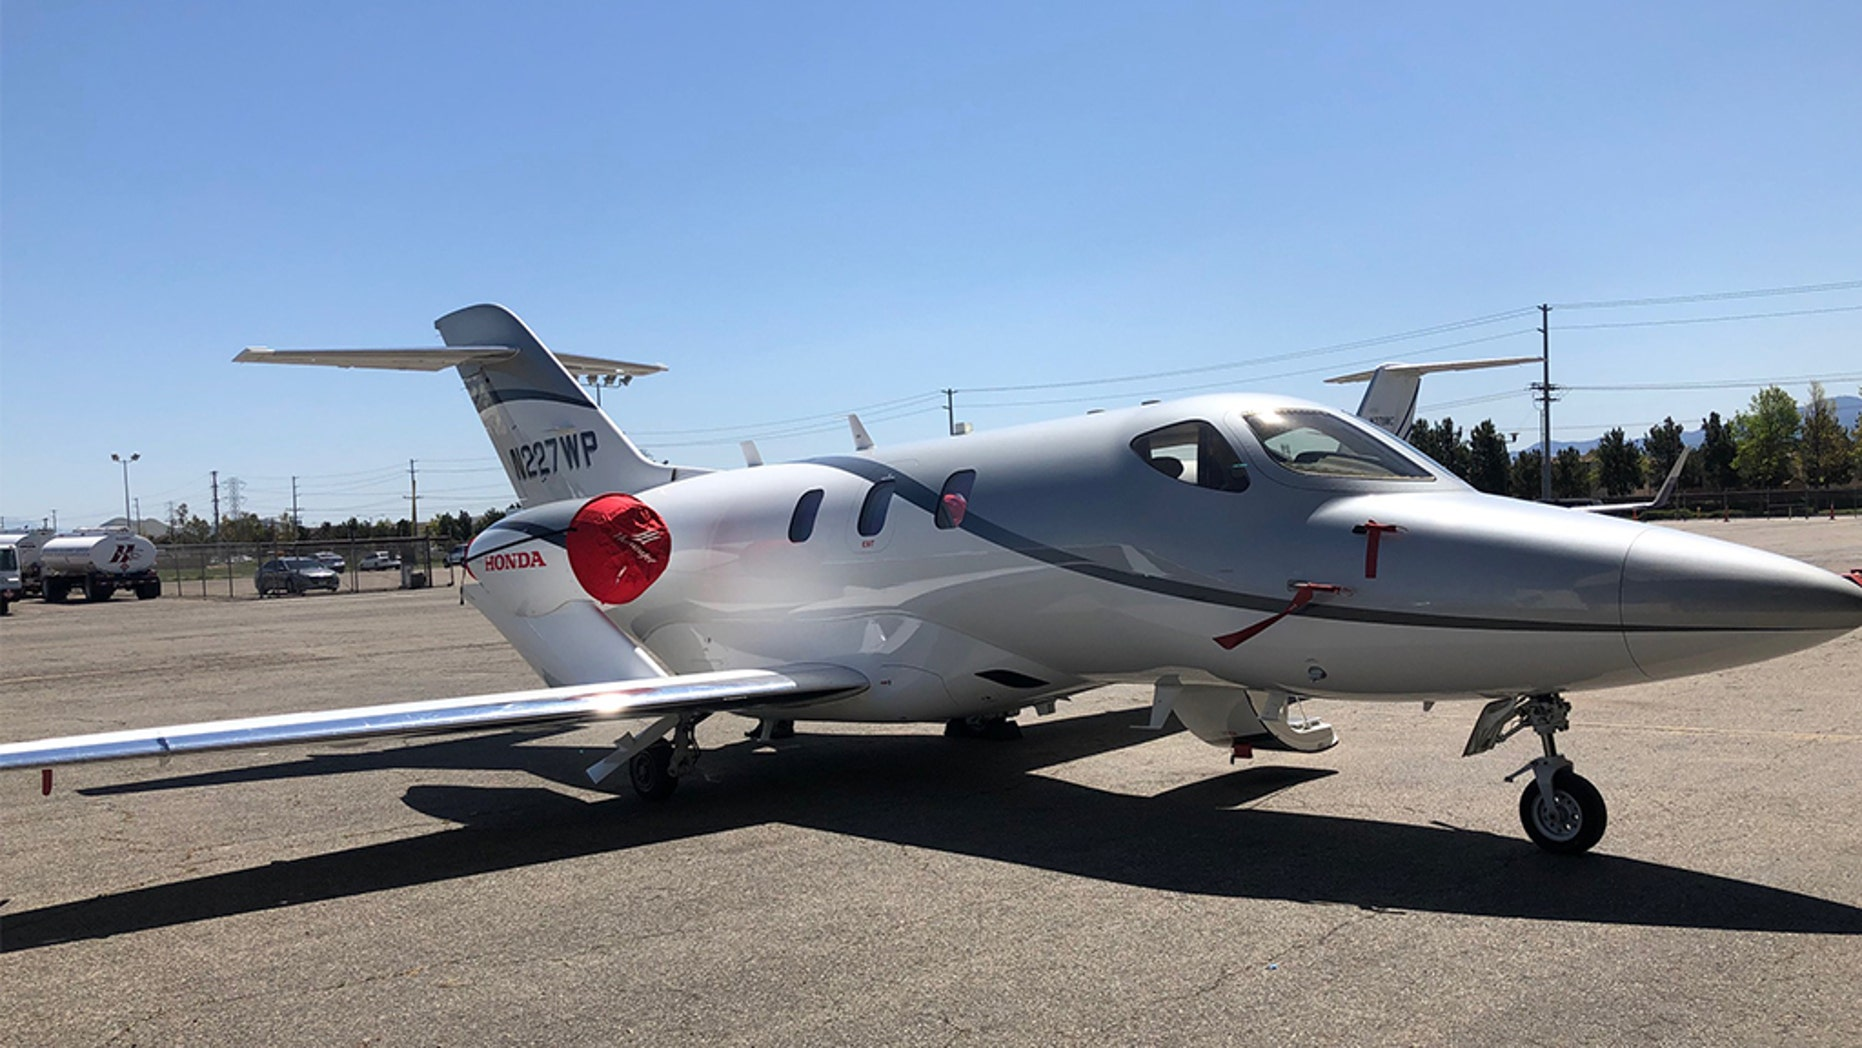 A U.S. Attorney's Office spokesman, Thom Mrozek, confirmed to Fox News that federal agents seized a Honda HA-420 twin-engine jet from Santa Barbara Airport about 10 a.m. after a federal judge issued a warrant.